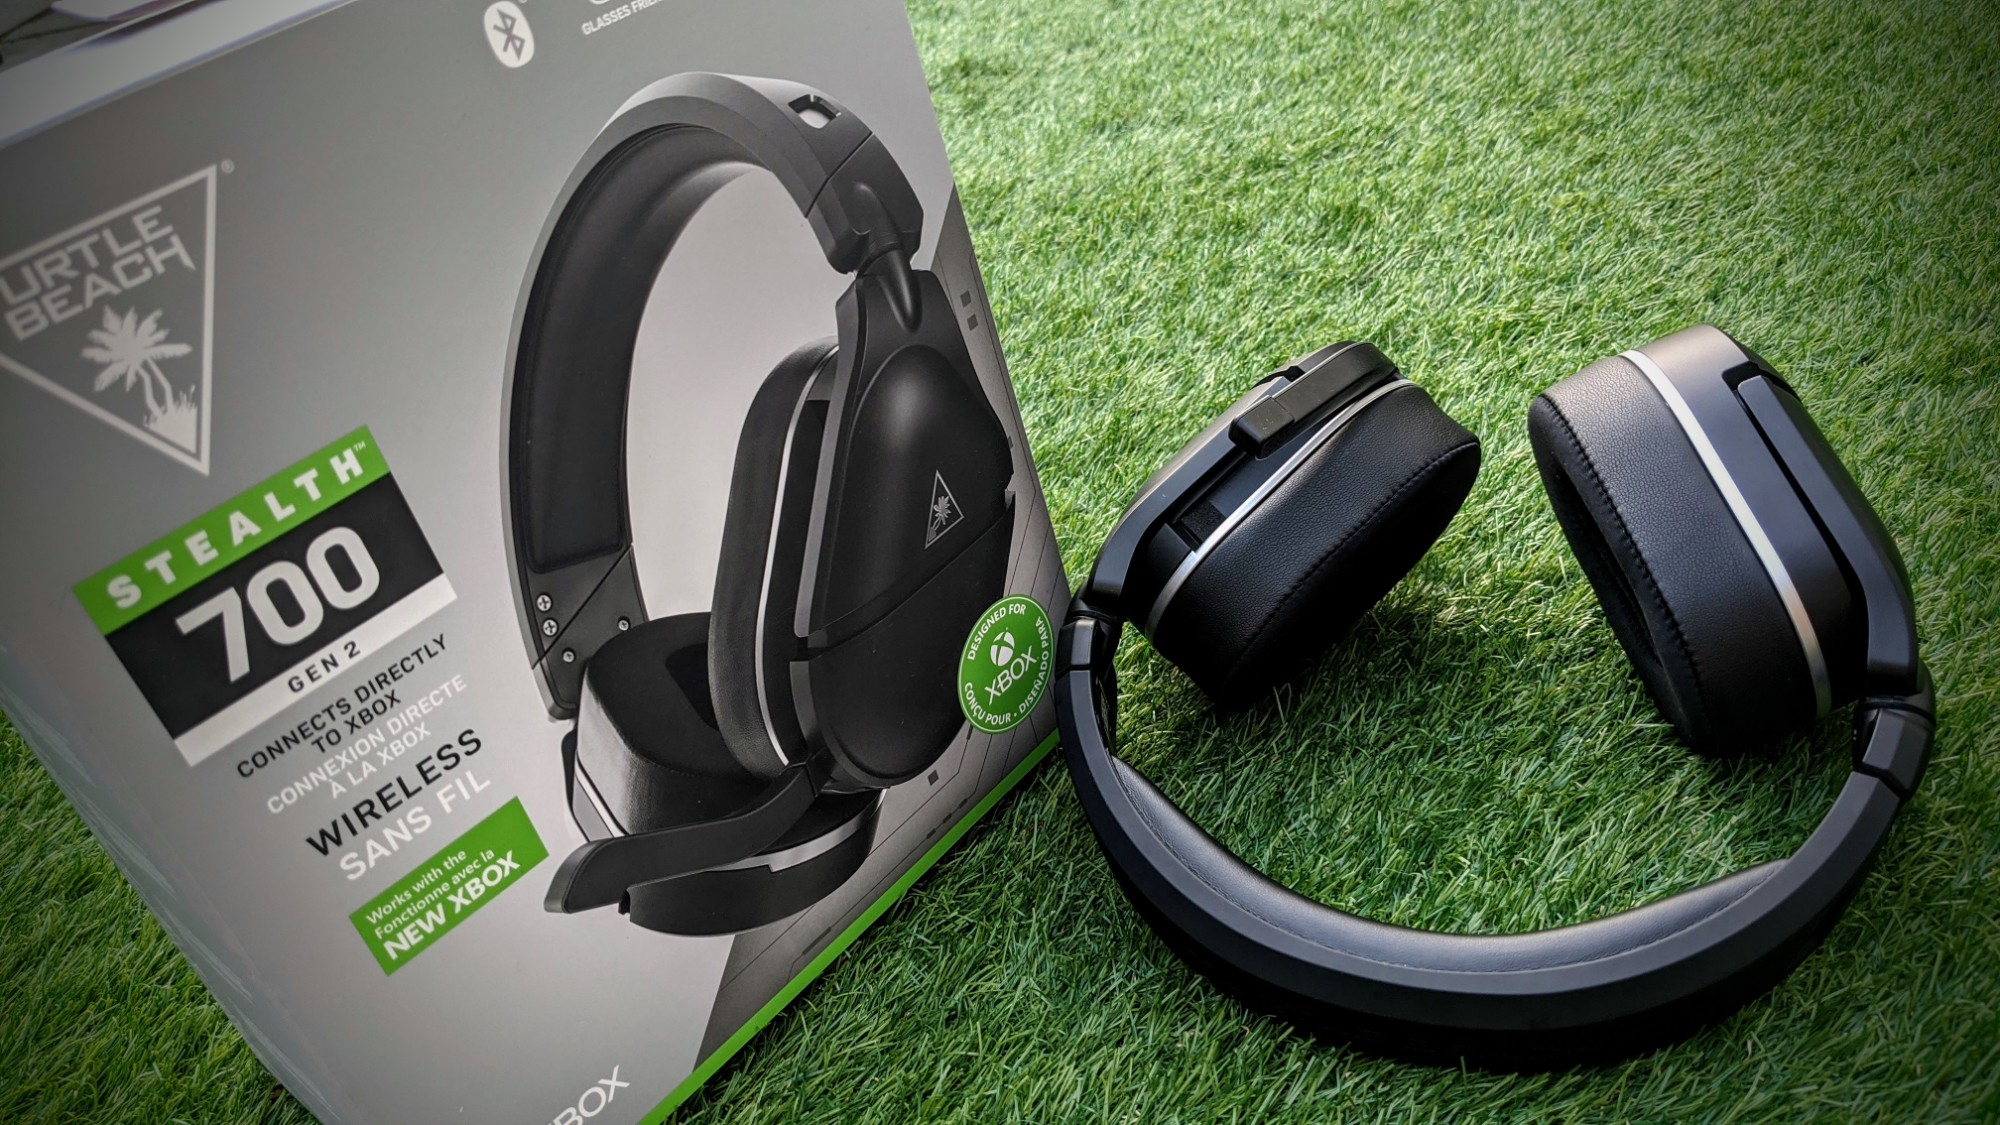 Turtle Beach Stealth 700 Gen 2 Headset for Xbox Review | TheXboxHub